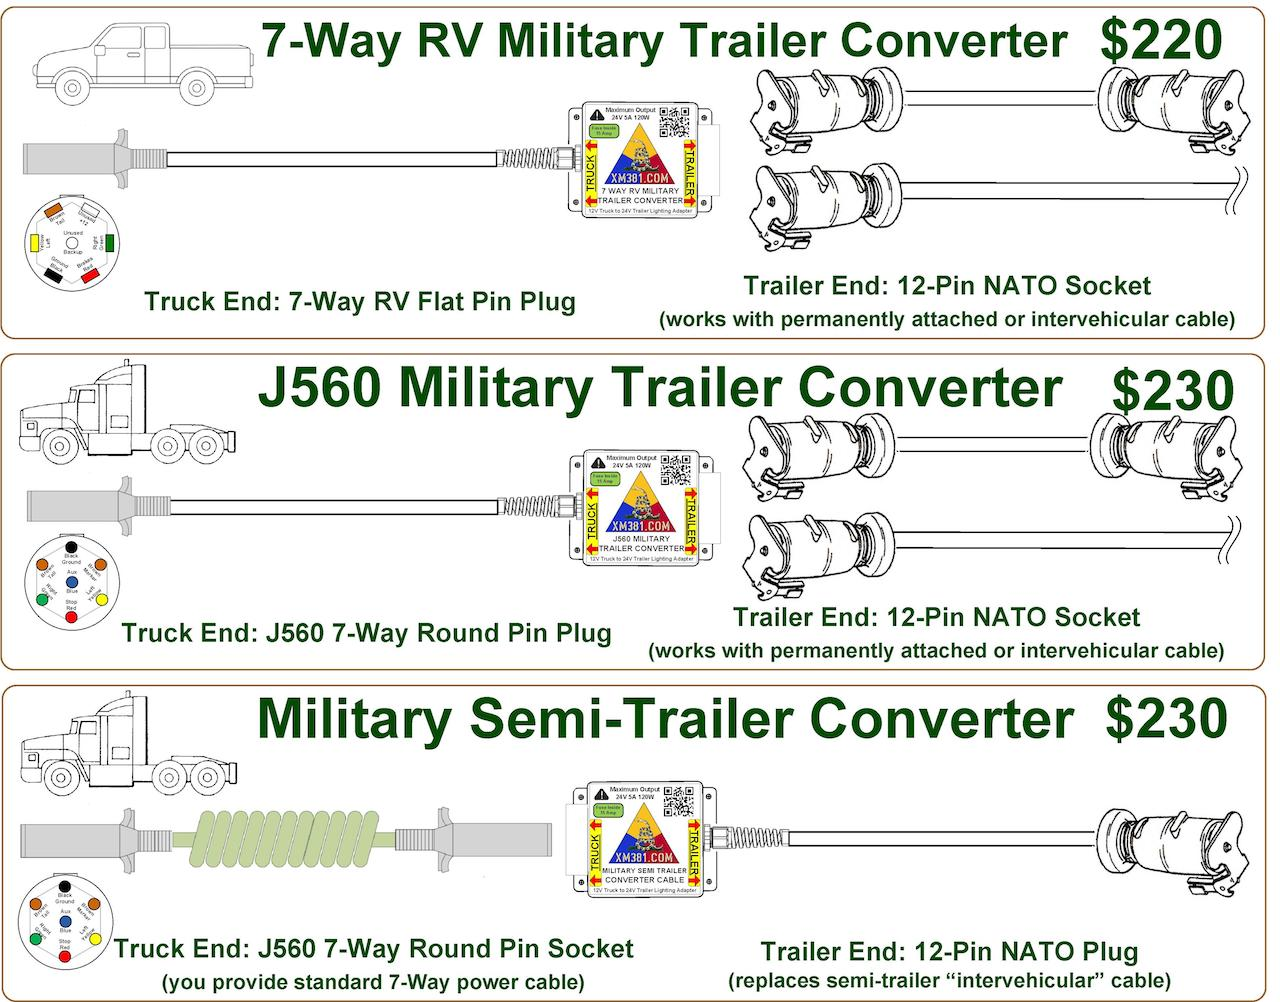 24v Military Trailer Wiring Diagram Great Installation Of Livestock Xm381 12 Volt Civllian Truck To 24 Lighting Rh Com Travel Stock